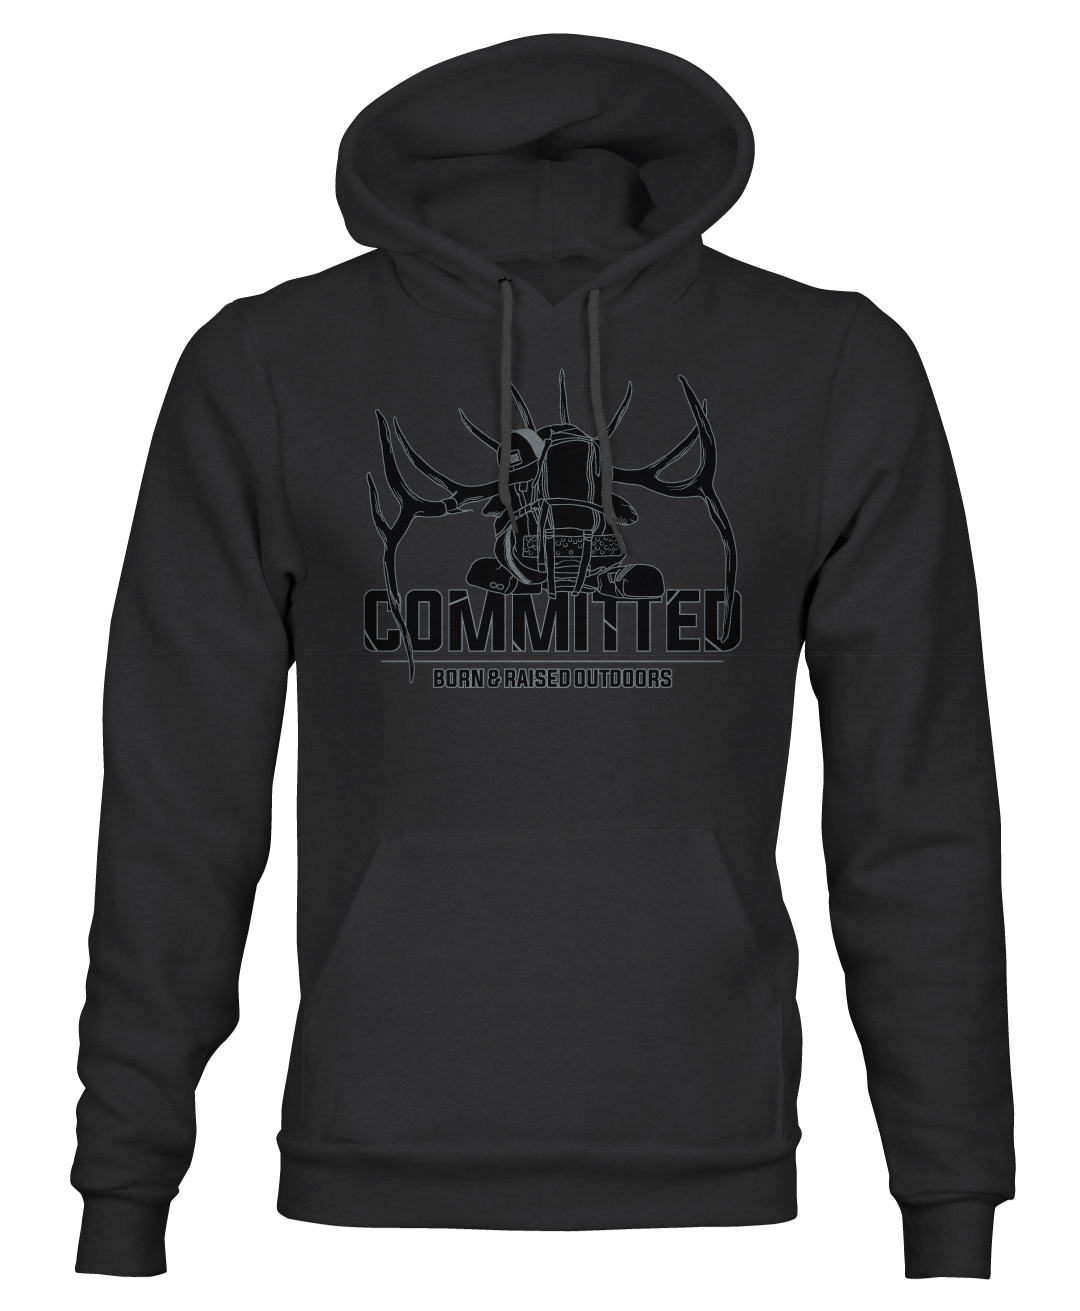 """COMMITTED"" HOODY"